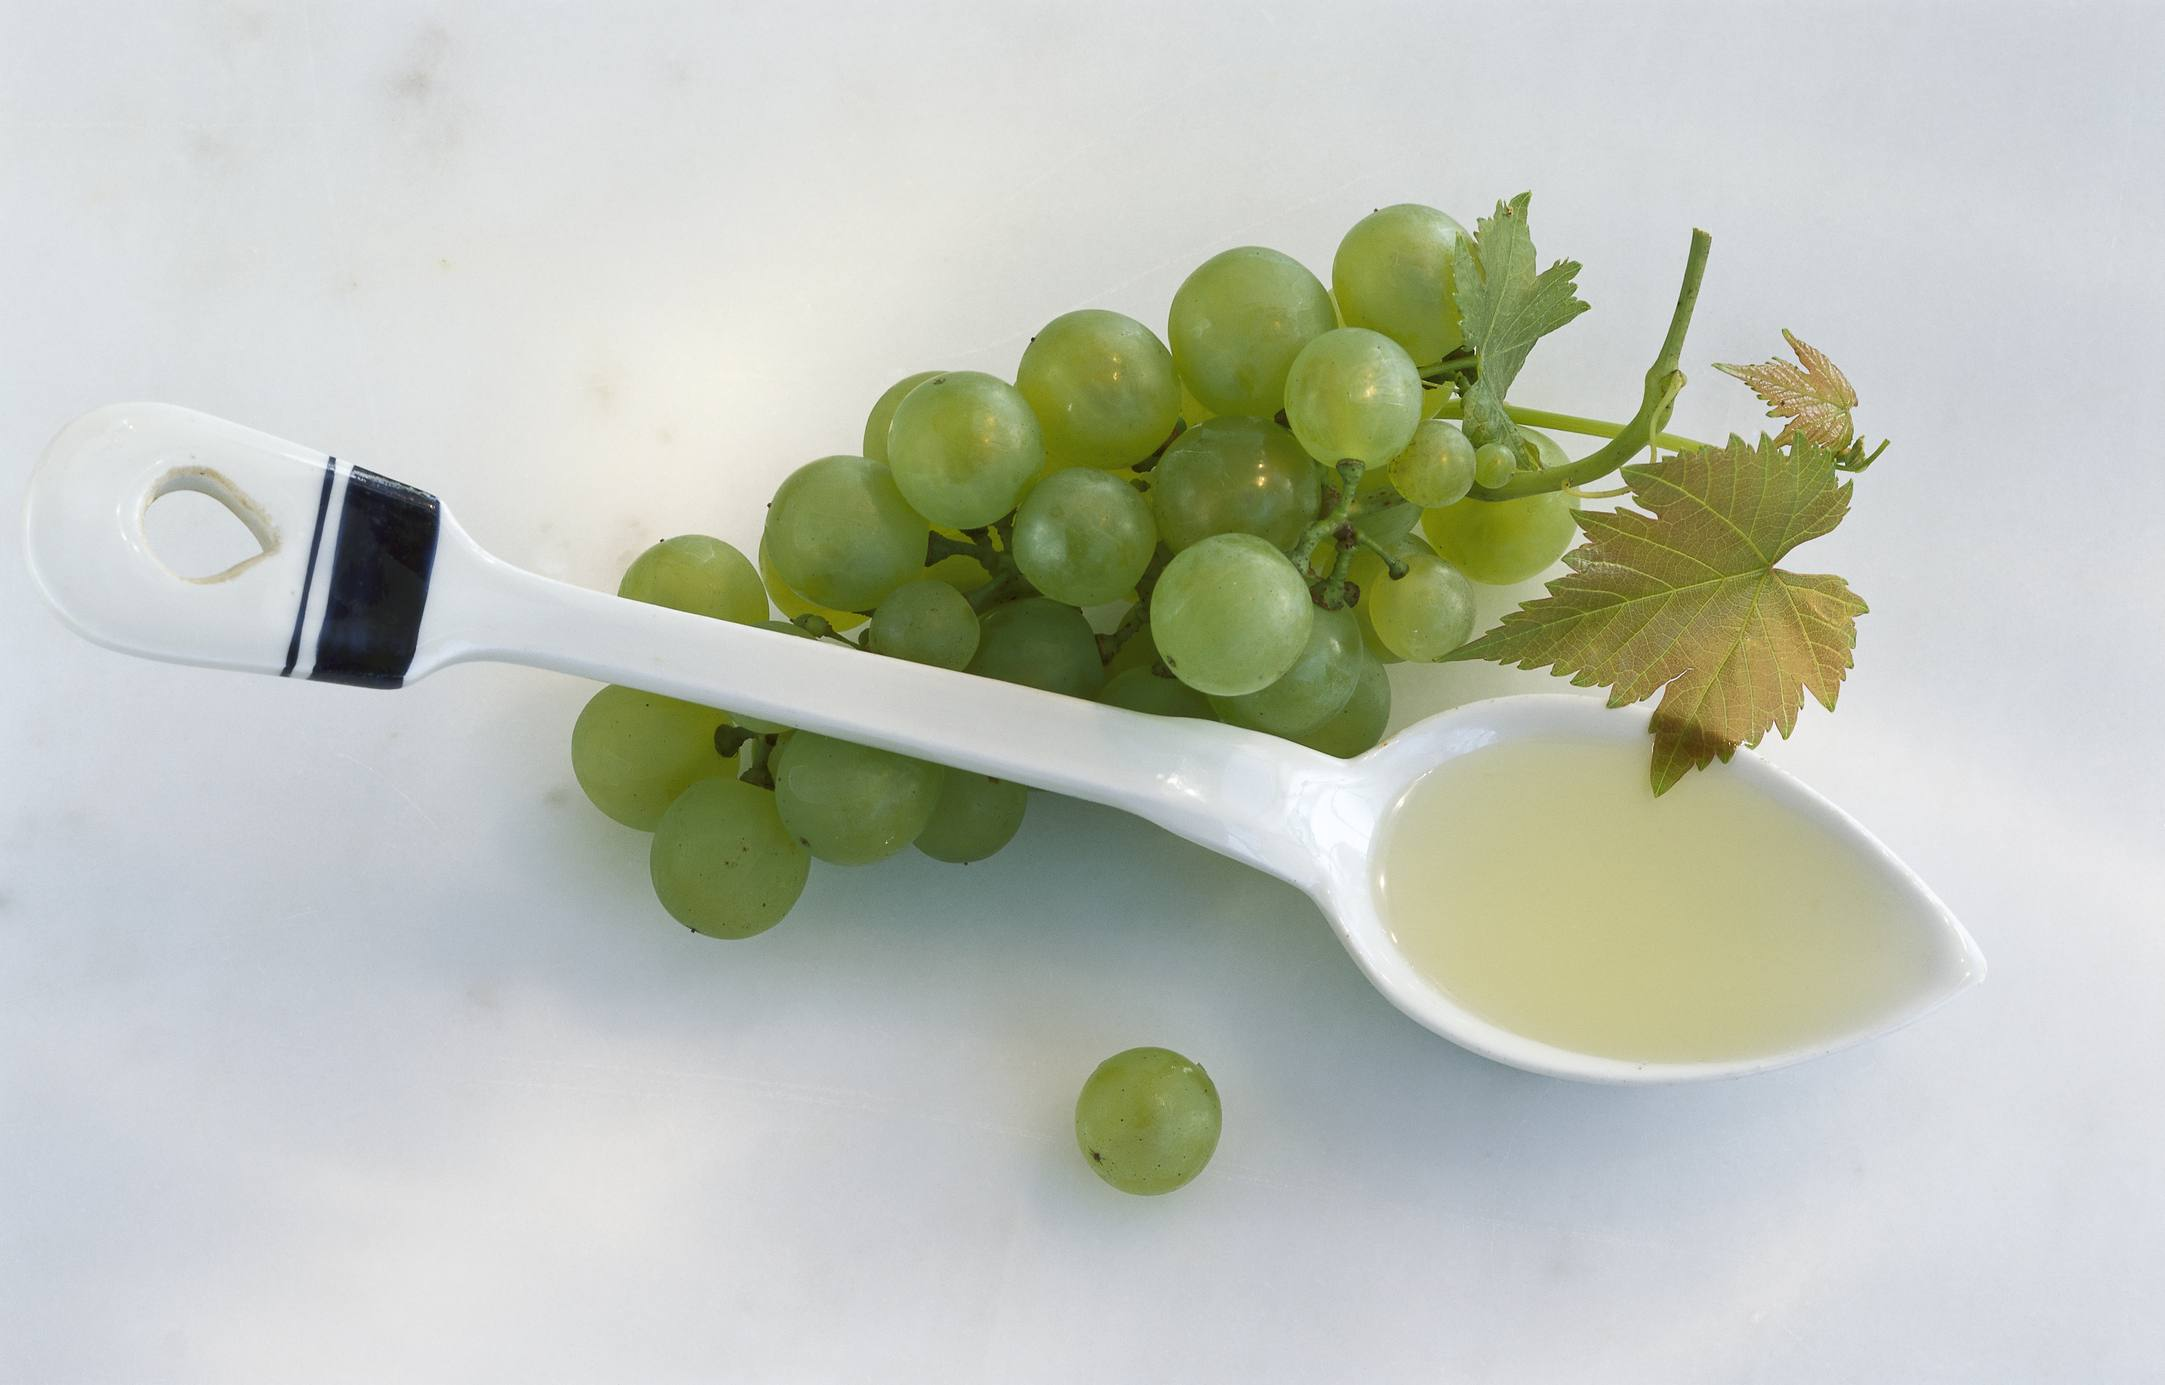 Grape seed oil in a spoon next to grapes